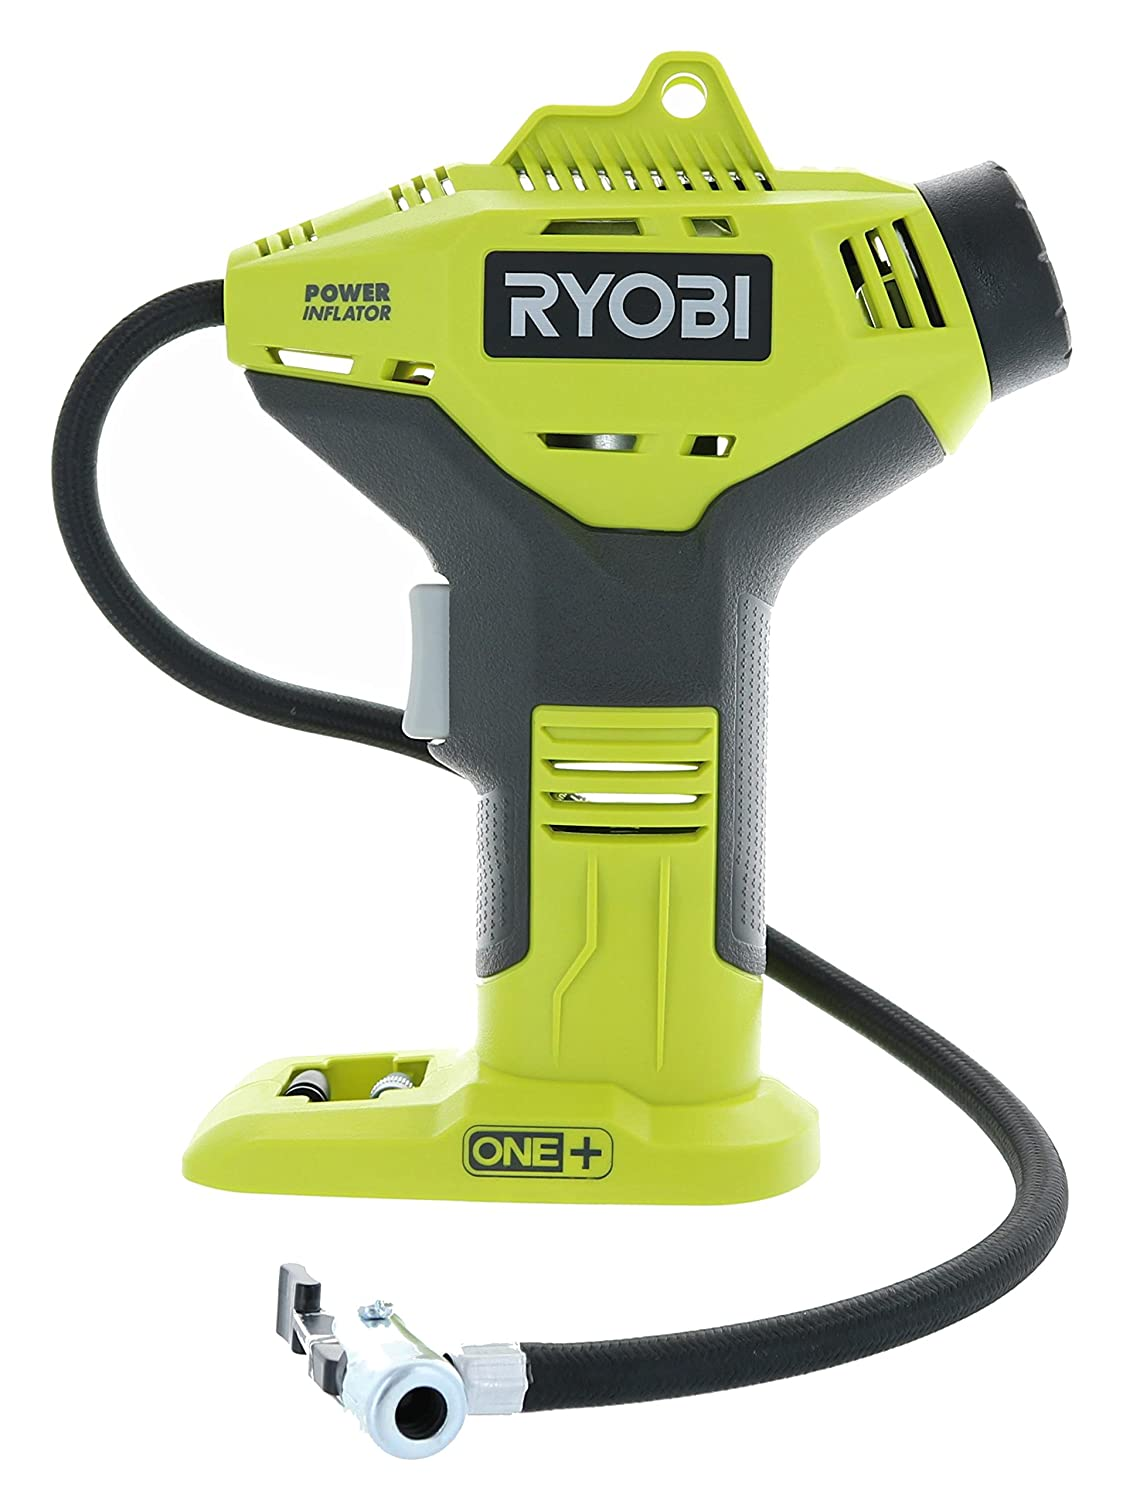 Ryobi Portable Cordless Power Inflator for Tires